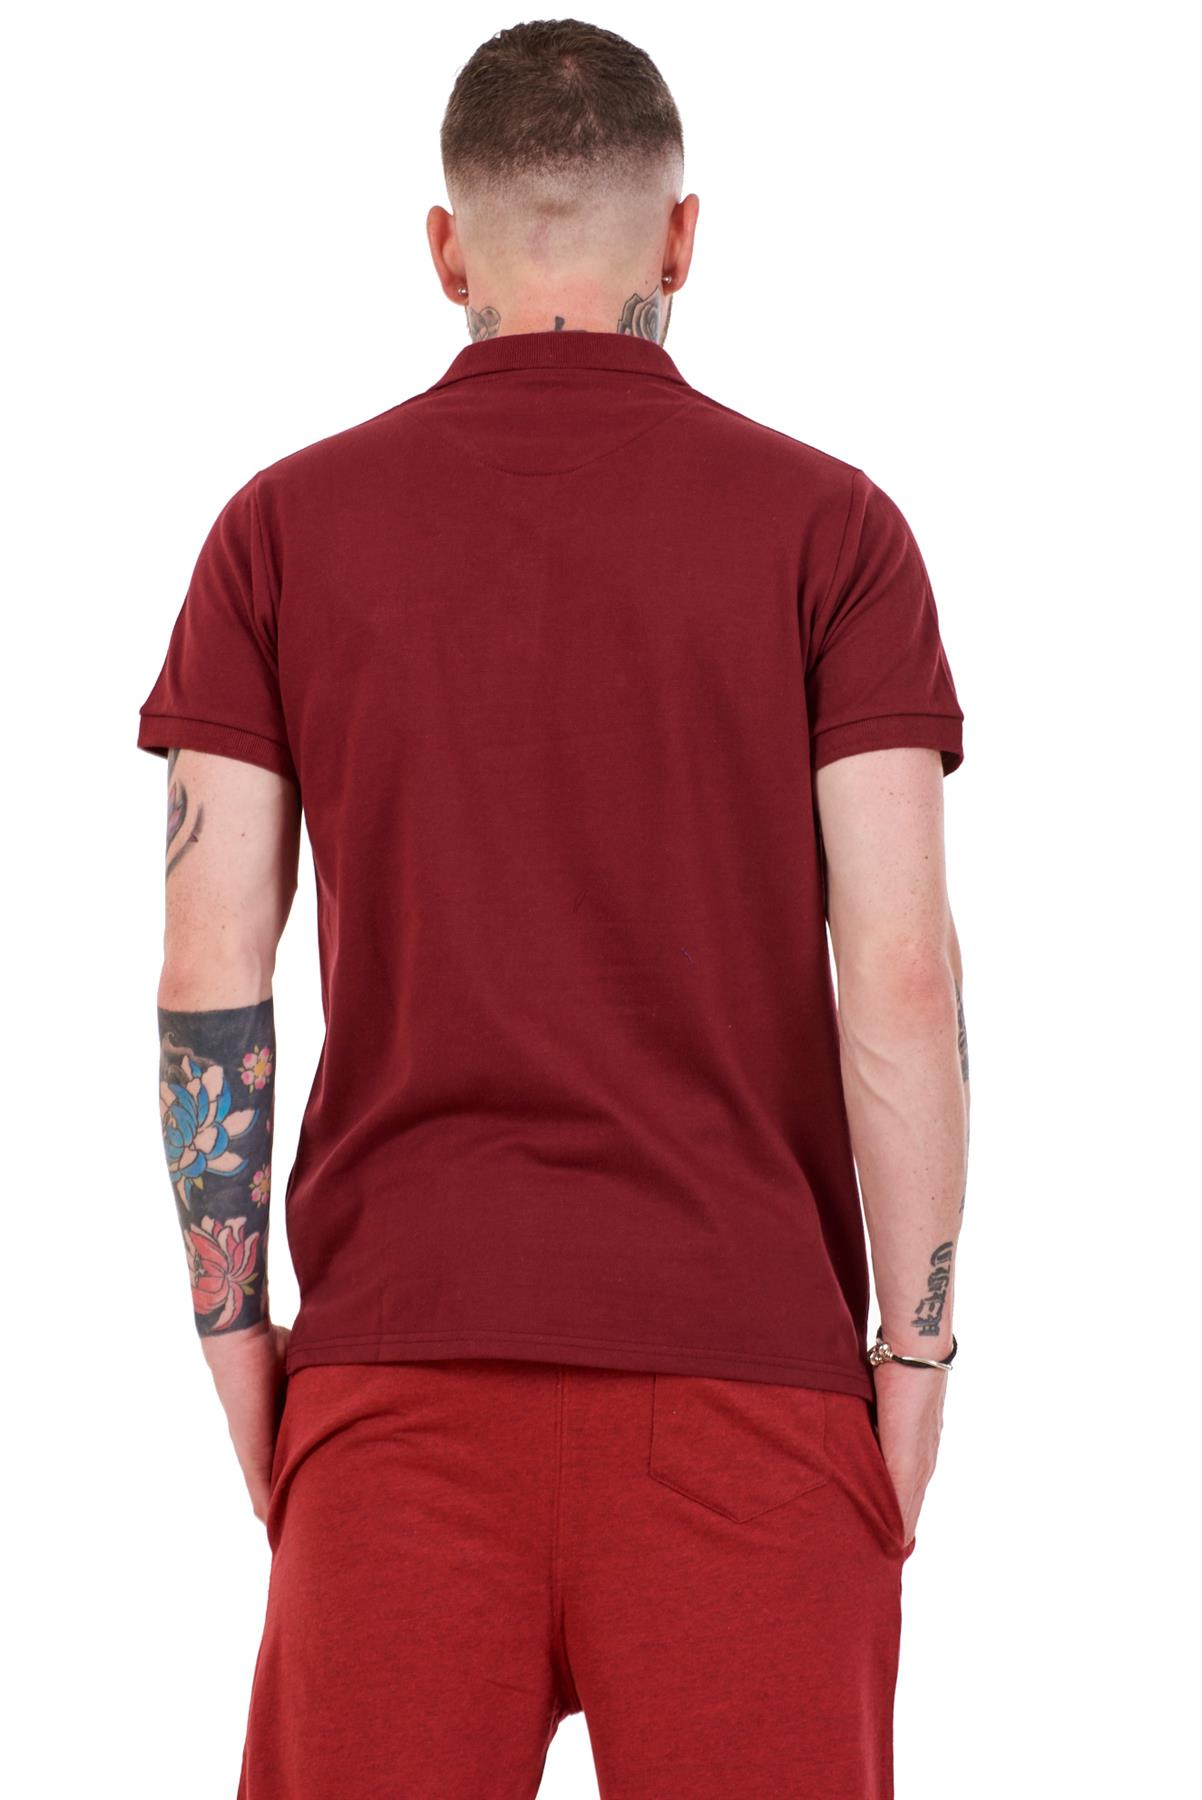 Mens-Plain-Solid-Polo-Cotton-T-Shirts-Regular-fit-Casual-Formal-Shirt-Top-M-XXL thumbnail 9